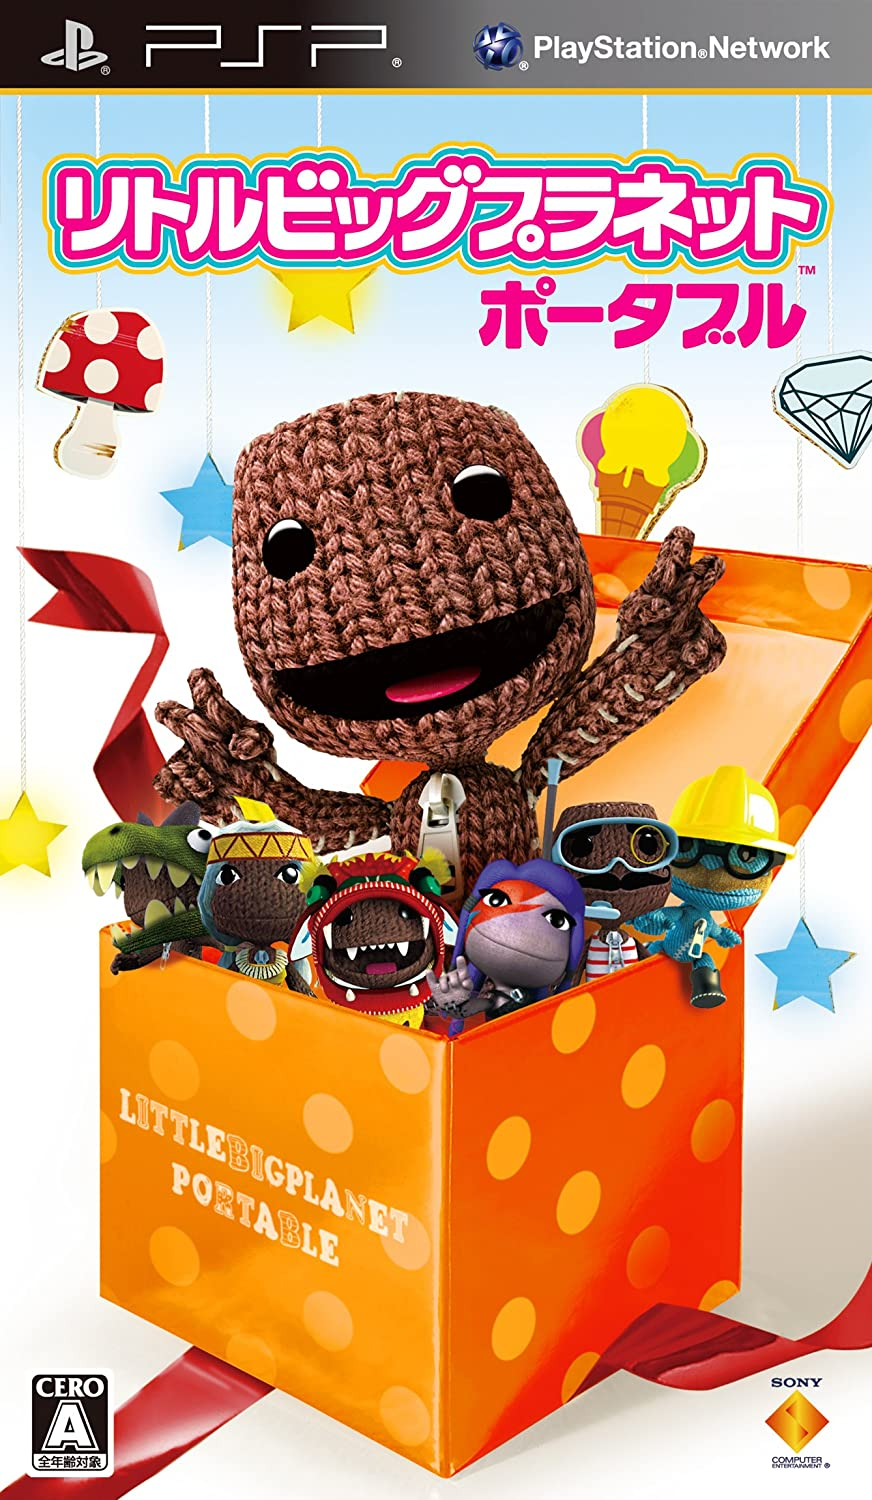 LittleBigPlanet Portable [Japan Import]